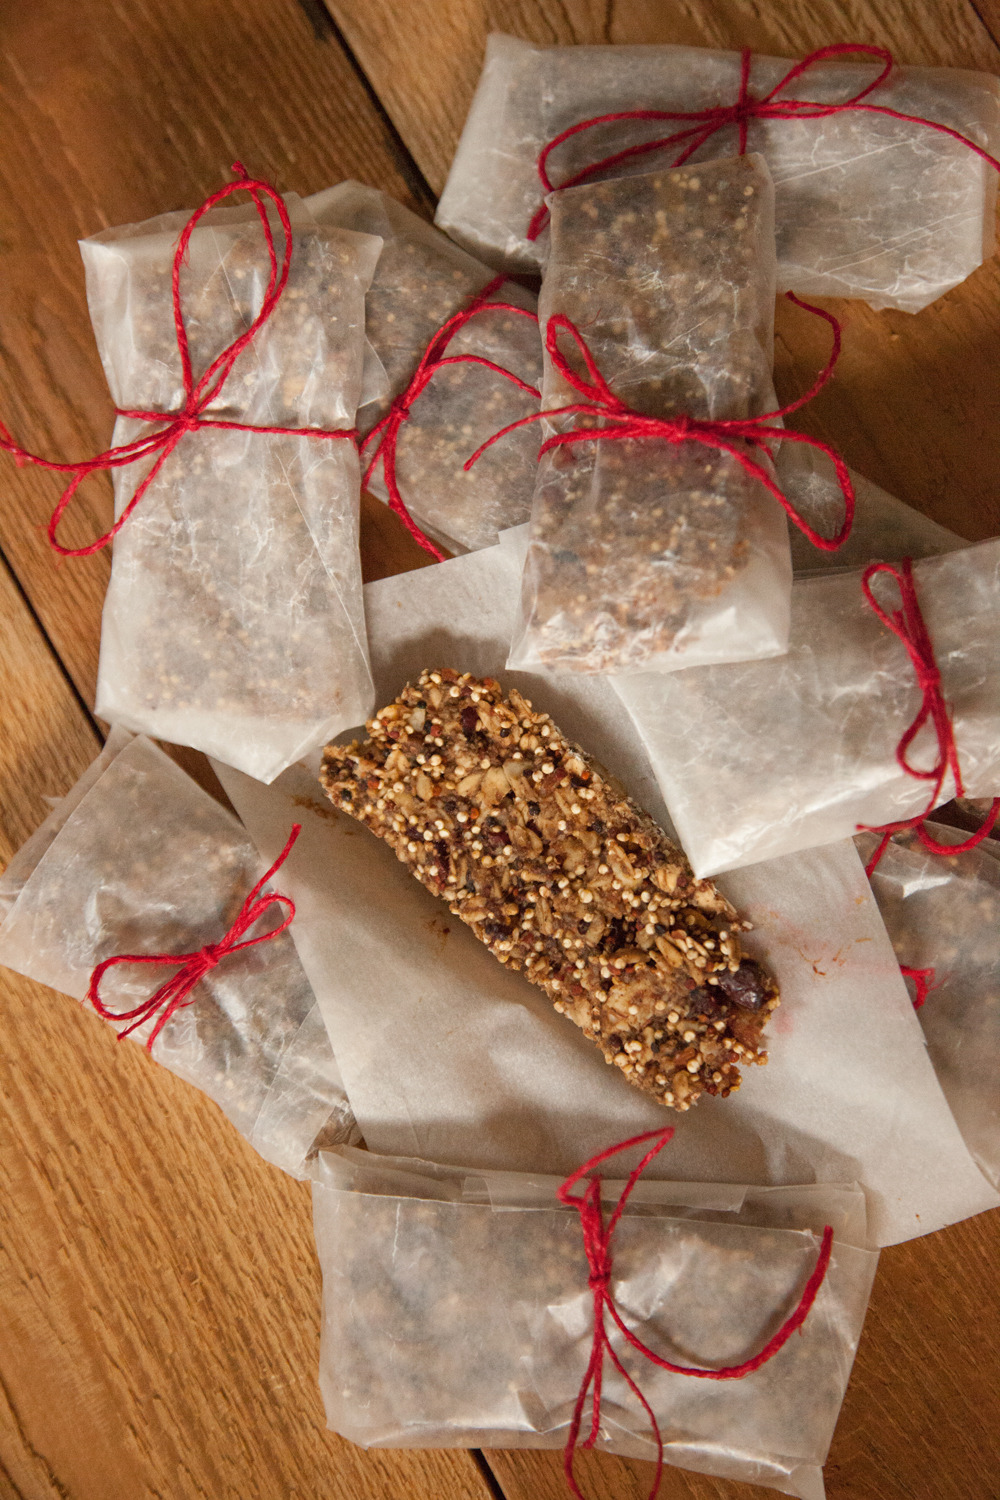 Vegan & Gluten Free (but full of nuts) Granola Bars!  Made for  the Barre Fitness blog  on #TastyTuesday.  They are actually delicious, and really easy, and I loved wrapping them like this because it mean I got to share with the instructors and they were super easy to grab on the go.    RECIPE HERE!